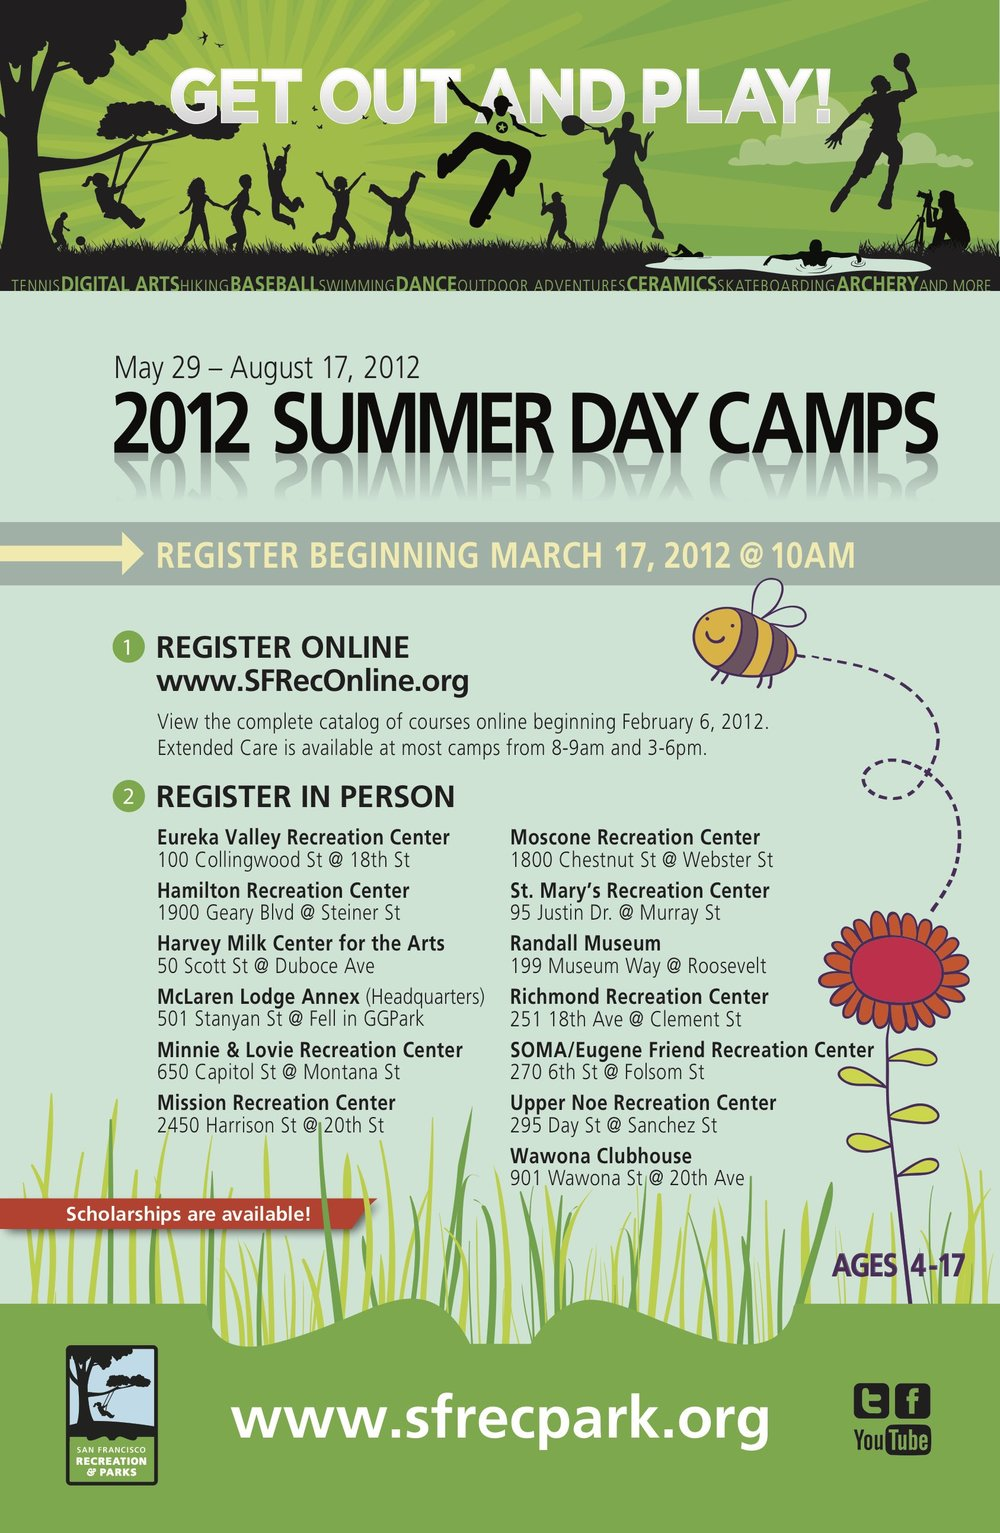 SUMMER_DAY CAMP_POSTER_11X17_2012C.jpg